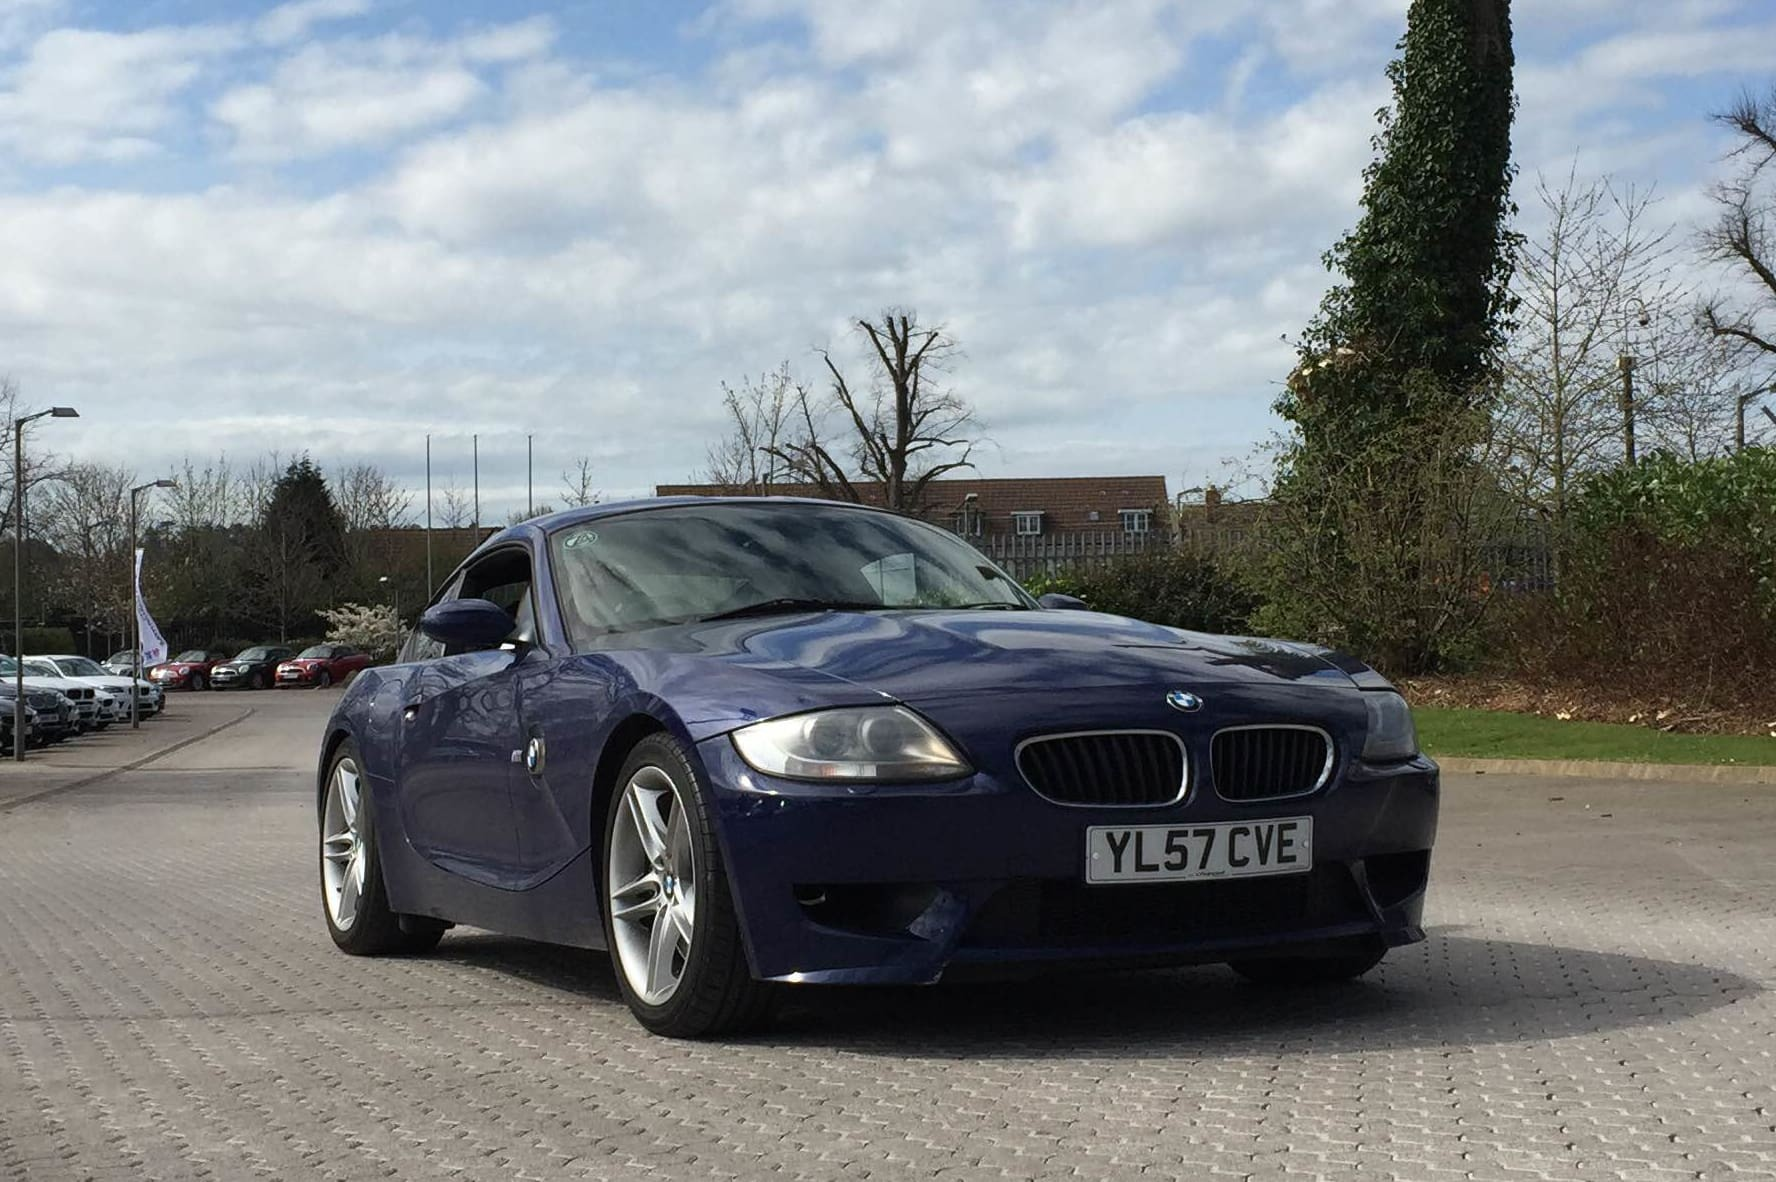 Z4 Owners Club Event - Sun 24th April 2016